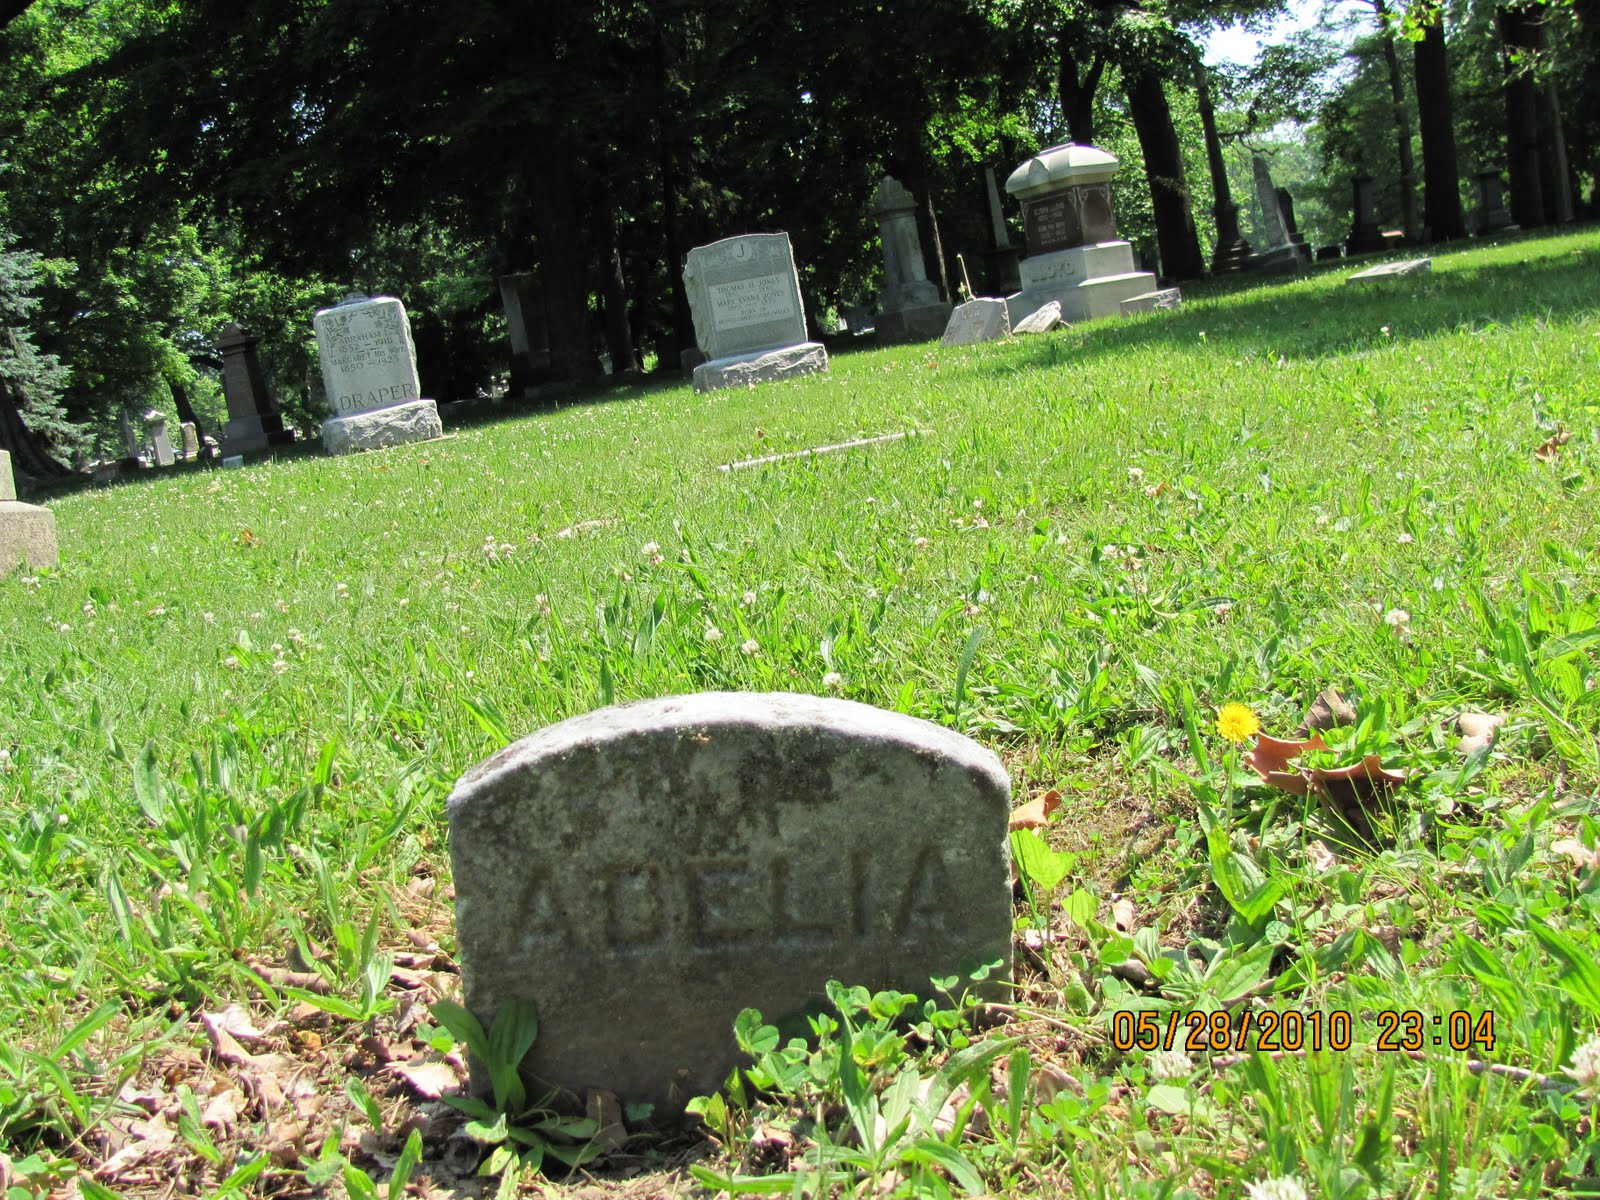 Illinois vermilion county catlin - She Was Born July 9 1833 In Gilfield Montgomeryshire Wales She Passed September 7 1923 In Muncie Vermilion County Illinois